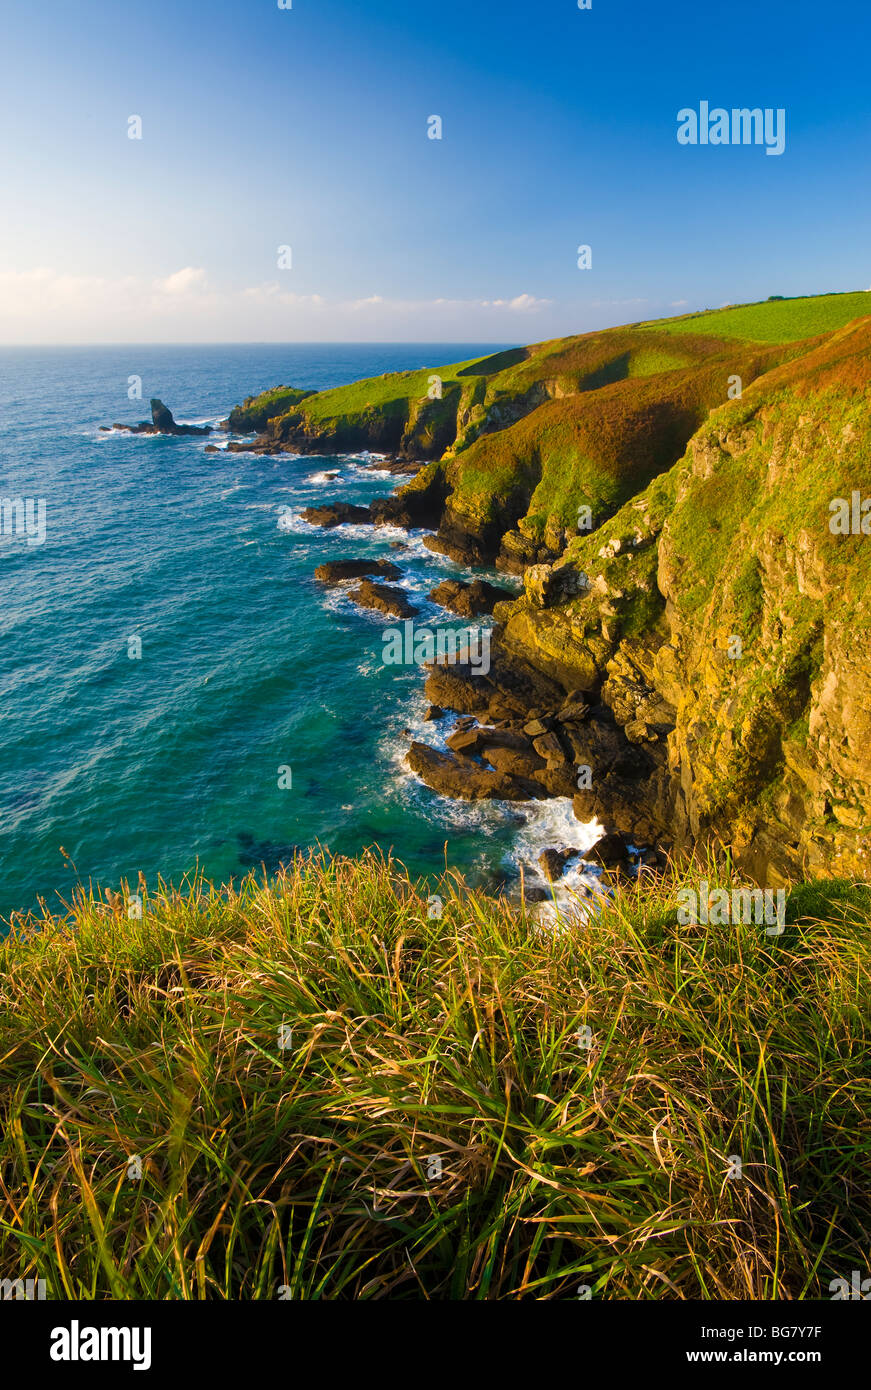 Lizard Peninsula, Cornwall, England, UK - Stock Image